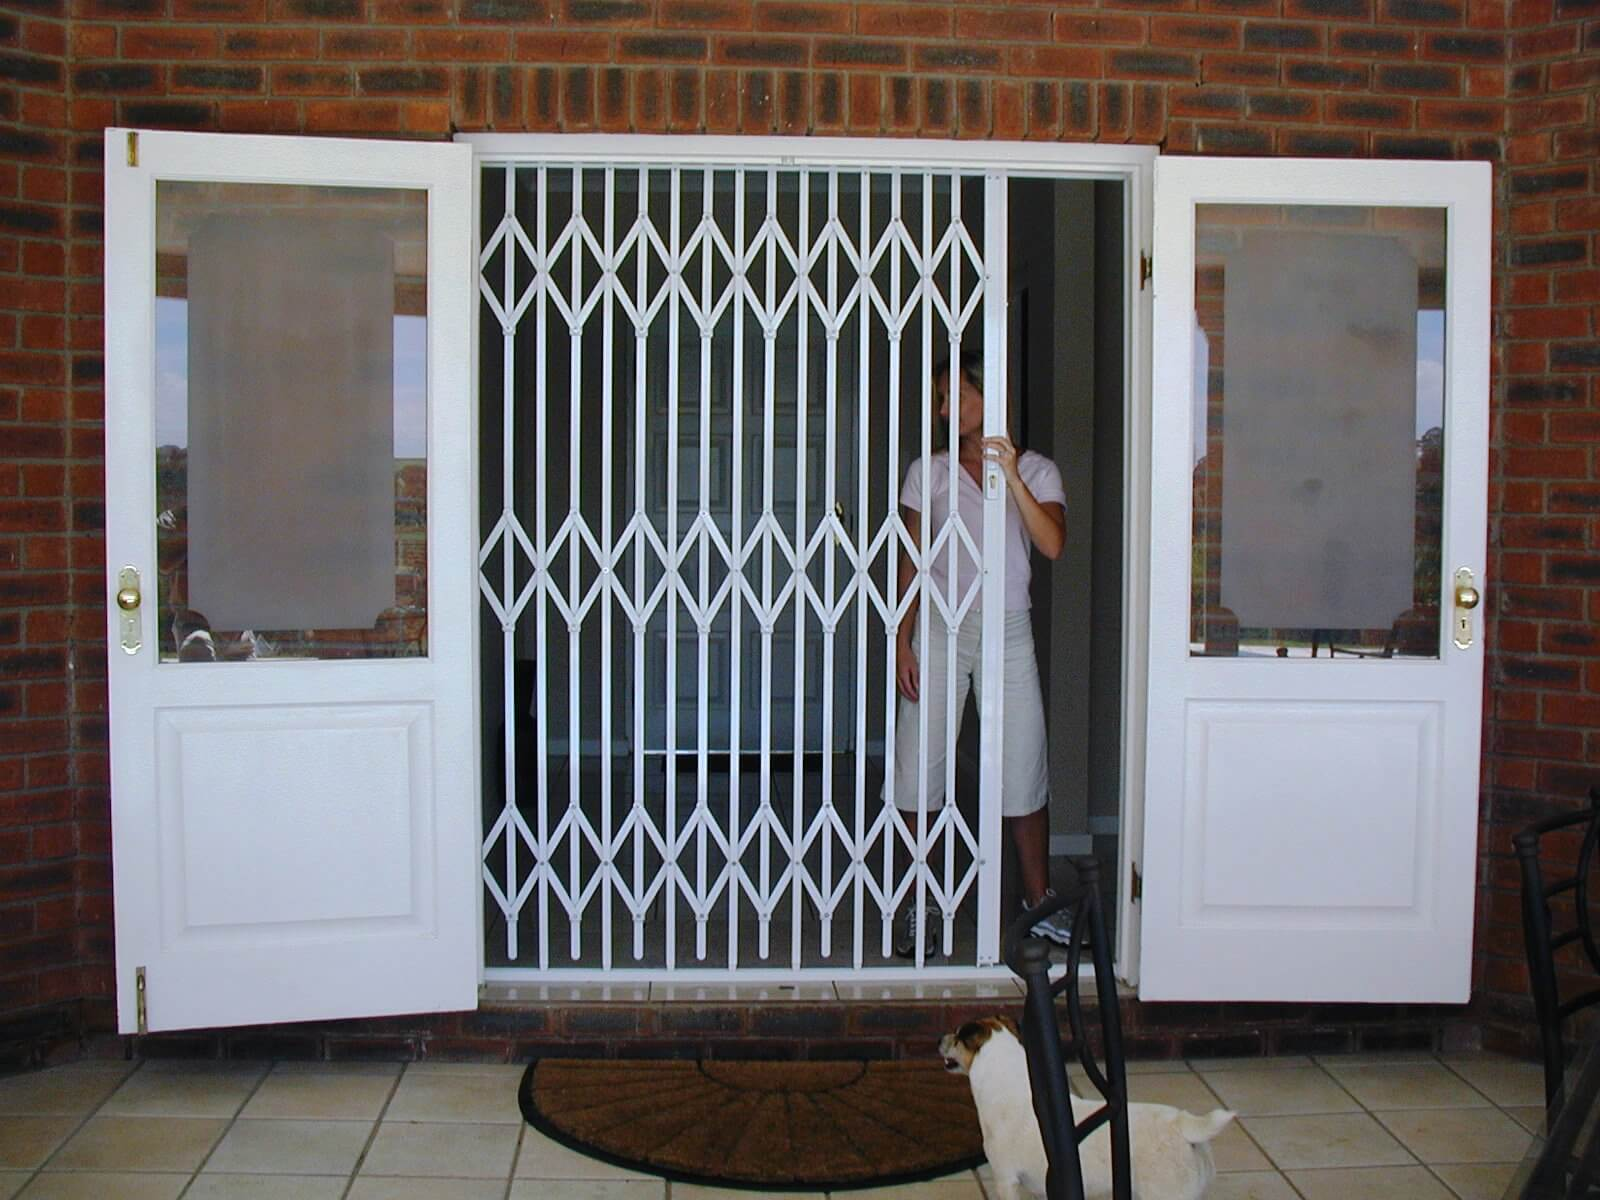 ... internal bifold doors sydney ... & Bifold doors - S03™ Concertina Steel Security Door | The Australian ...